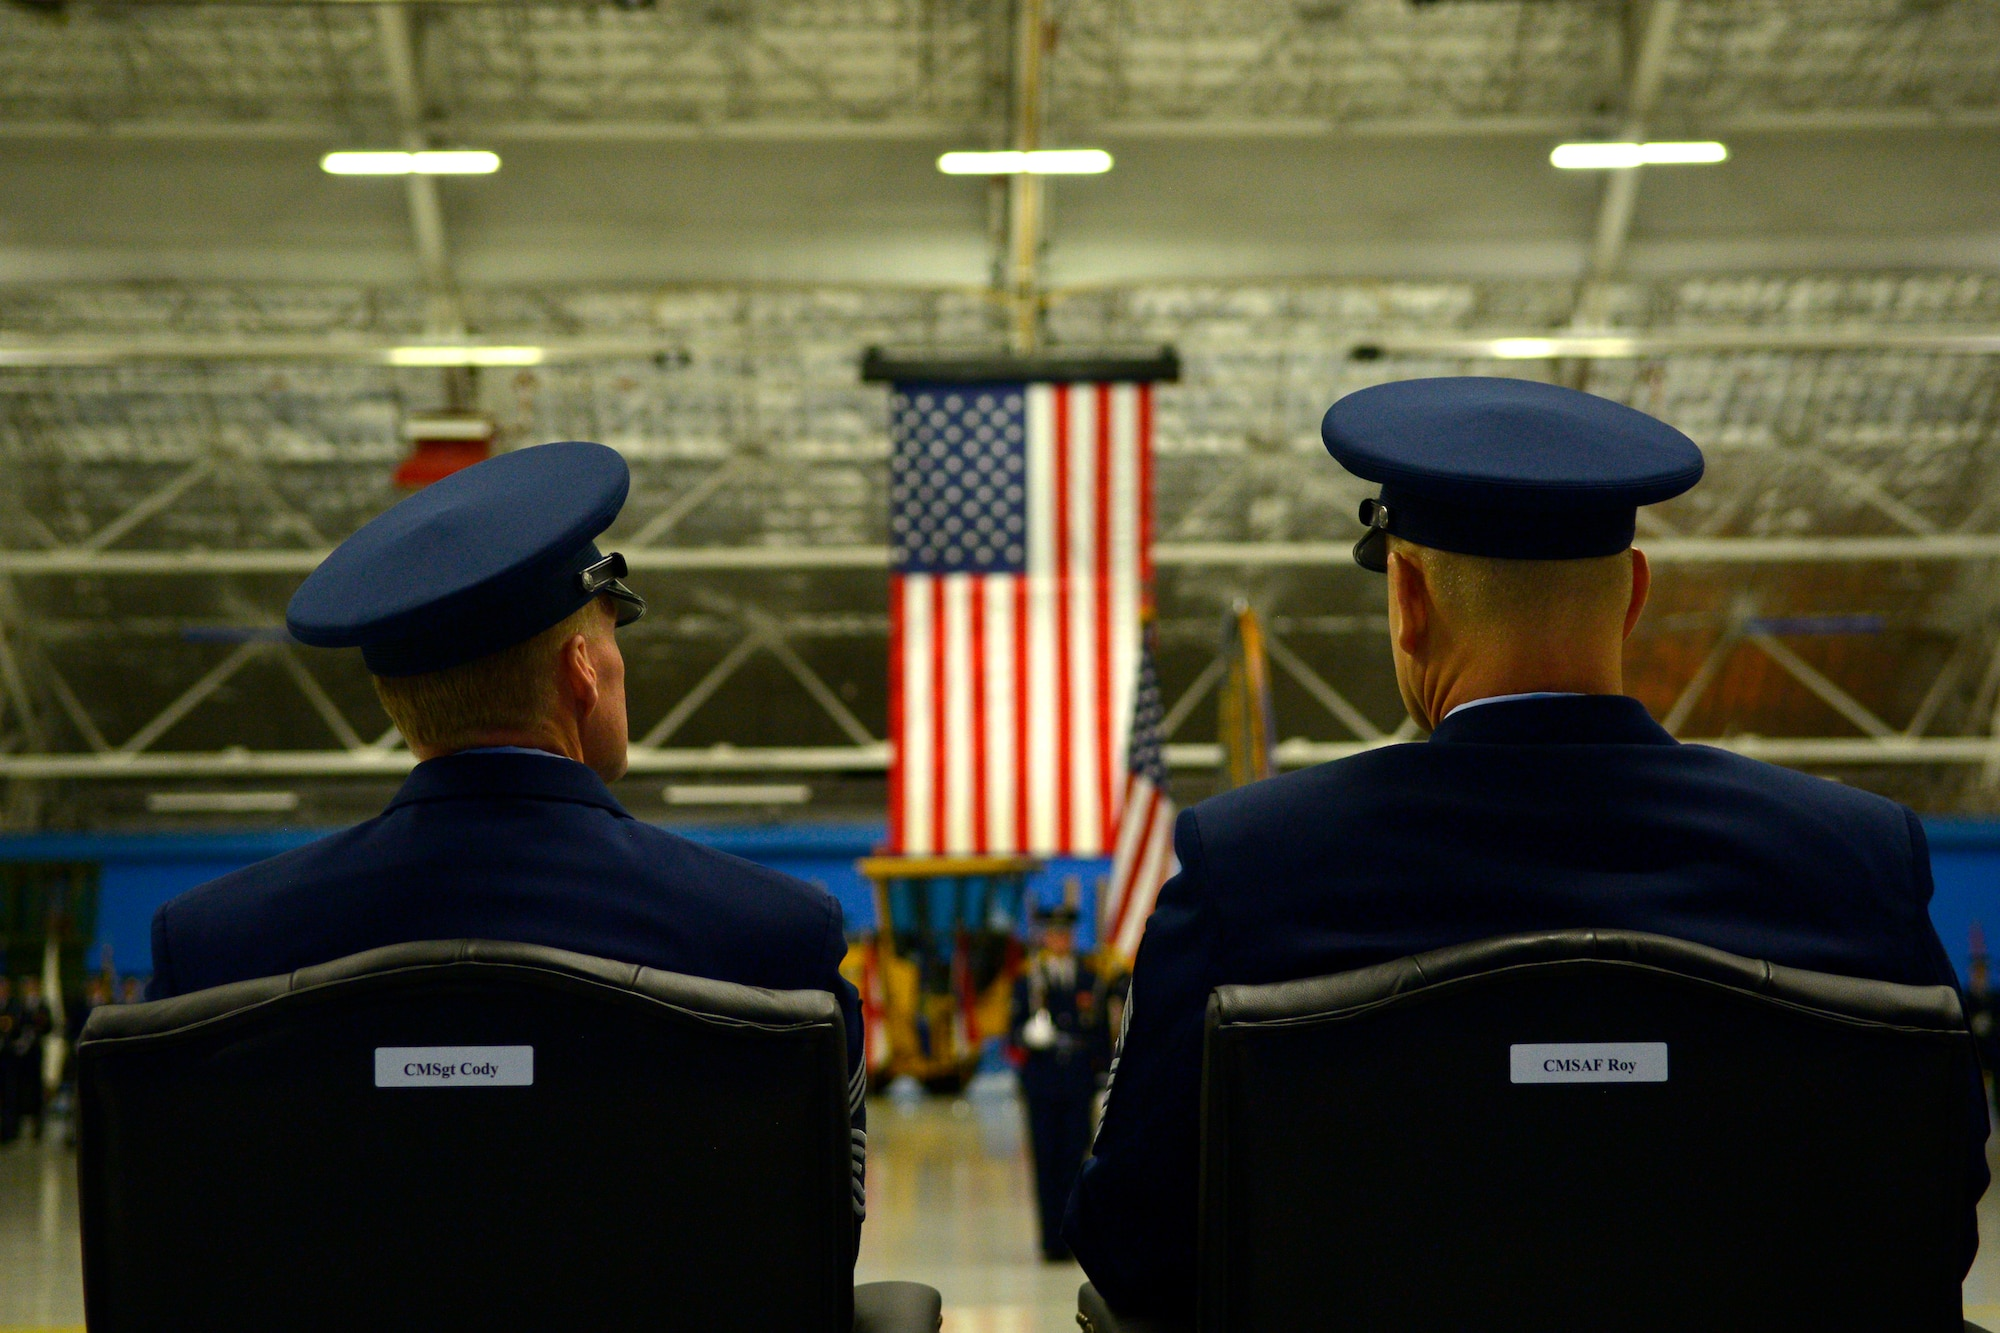 Chief Master Sgt. of the Air Force James Cody and the 16th Chief Master Sgt. of the Air Force (ret.) James Roy watch as the colors are posted during the retirement and transition ceremony at Joint Base Andrews, Md., Jan. 24, 2013. (U.S. Air Force photo/Master Sgt. Cecilio Ricardo)